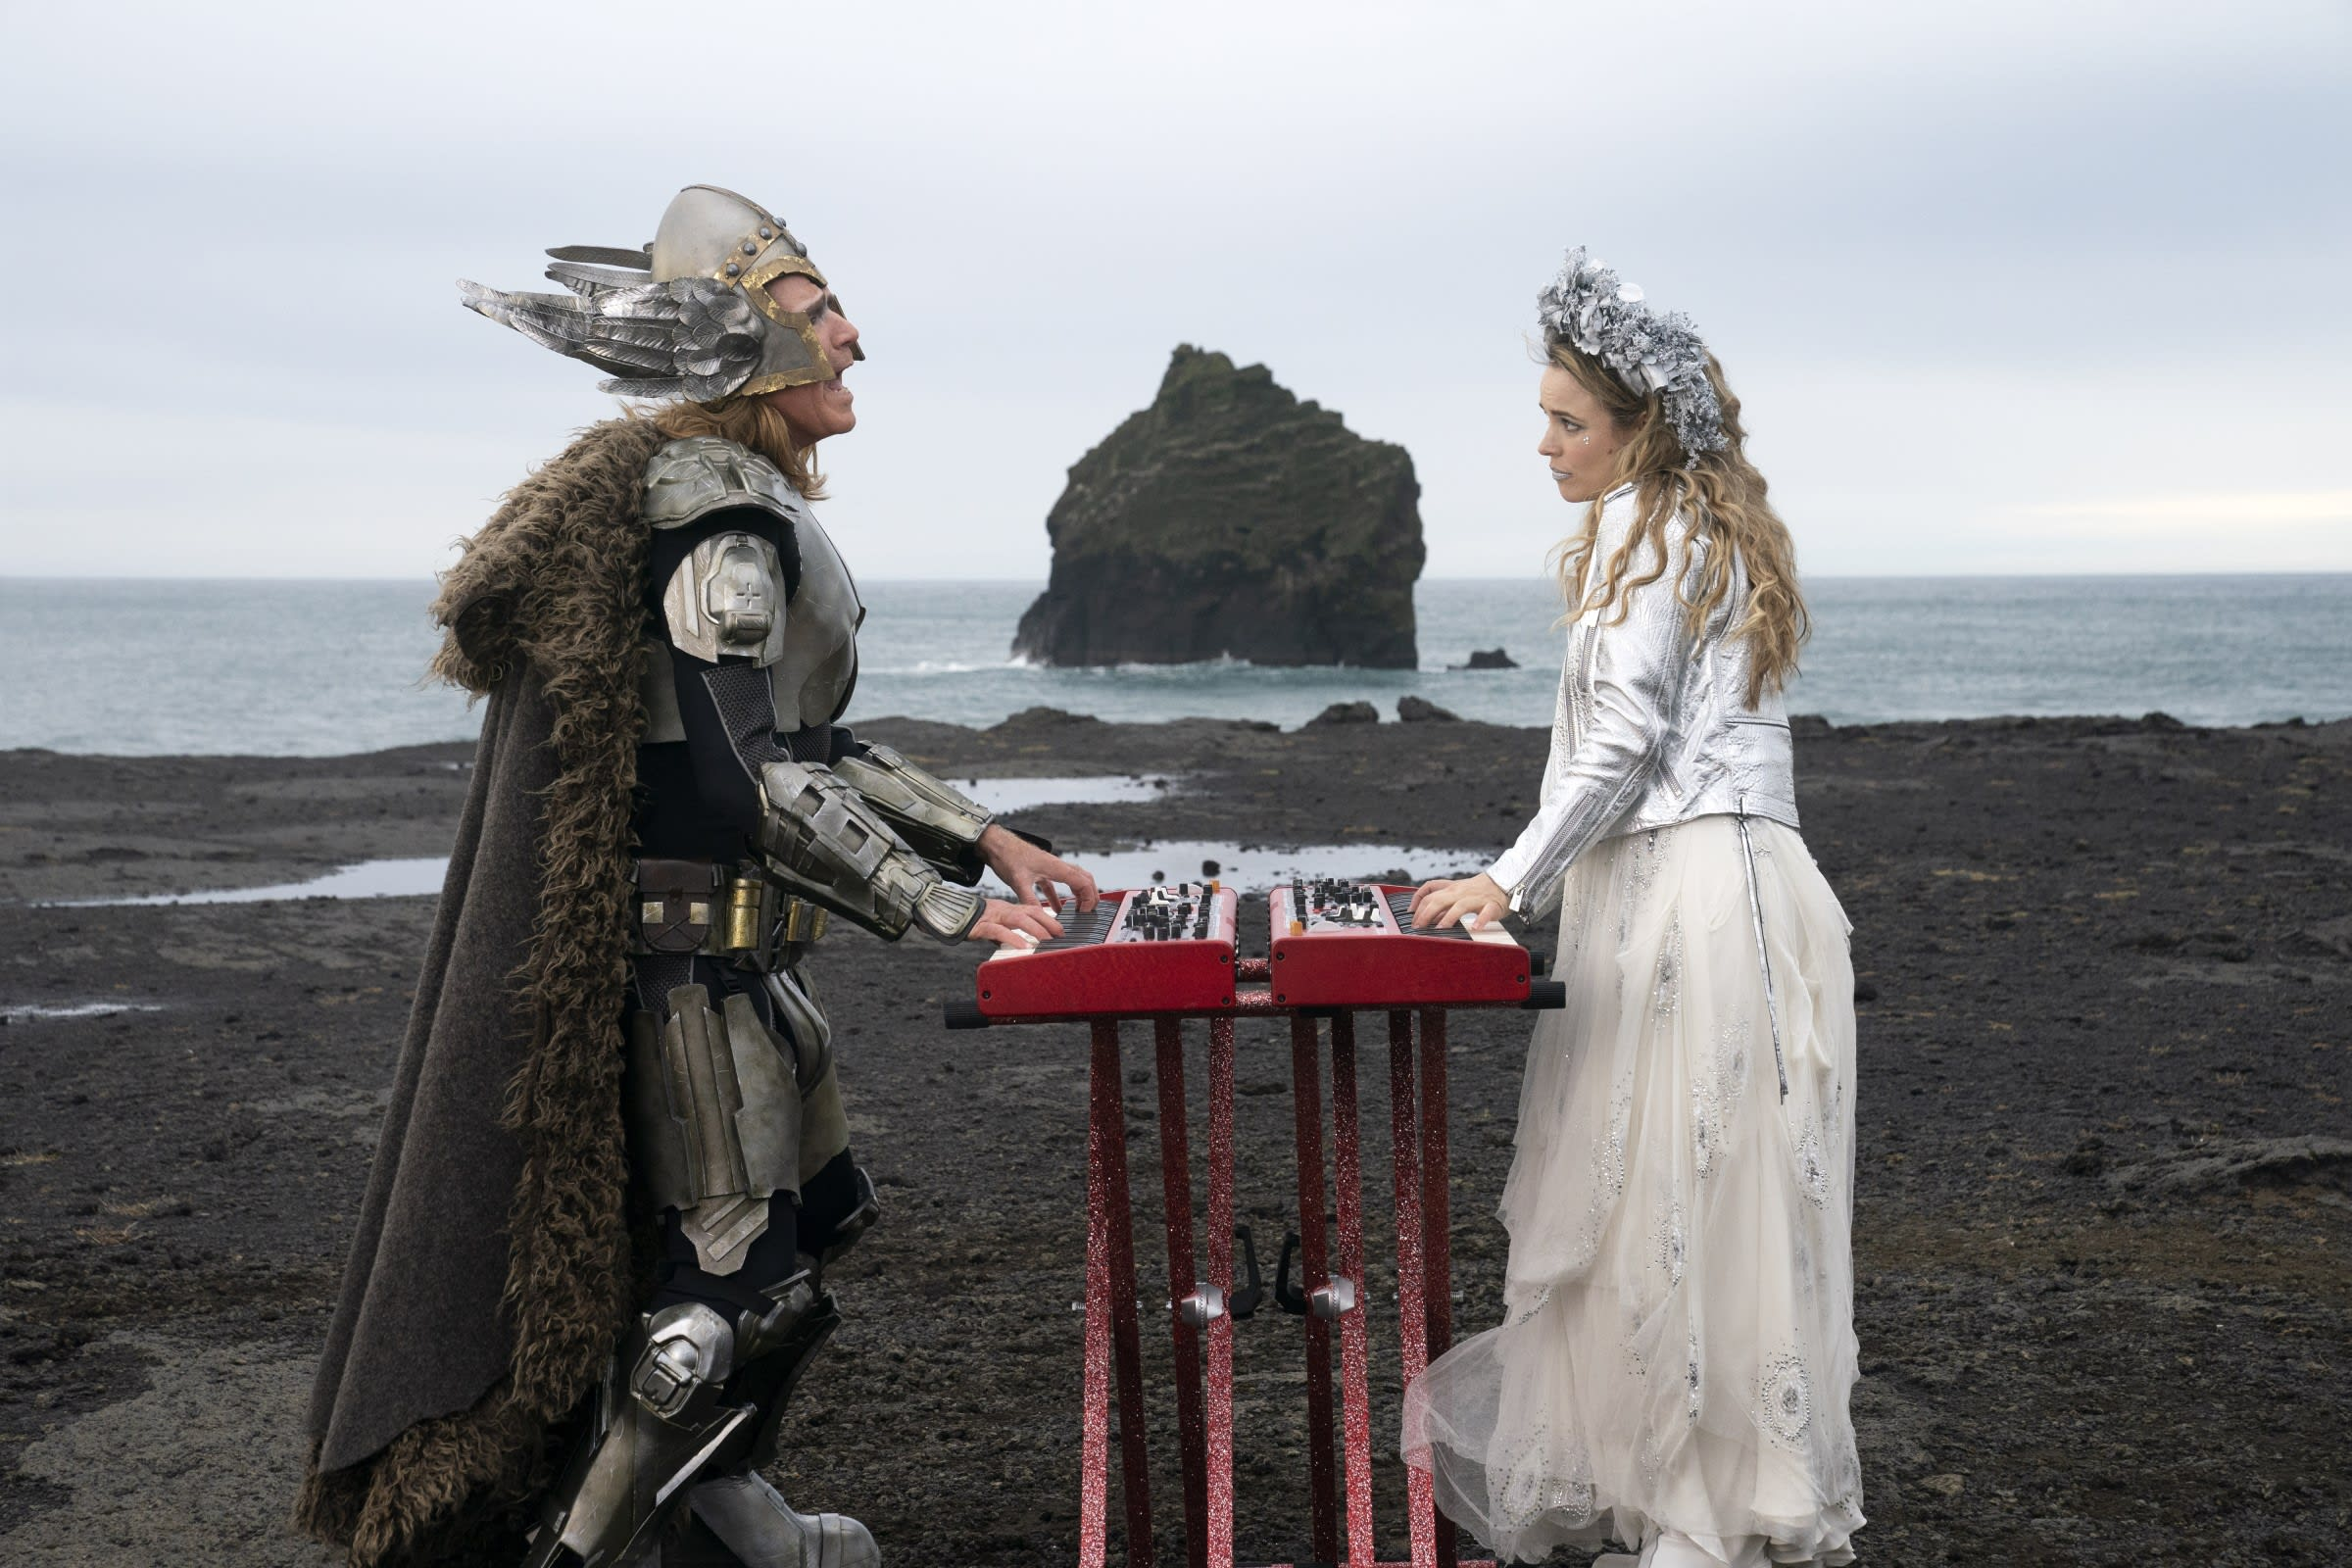 Will Ferrell and Rachel McAdams pictured playing two keyboards while looking at one another and singing. The scene is set amidst the Icelandic landscape